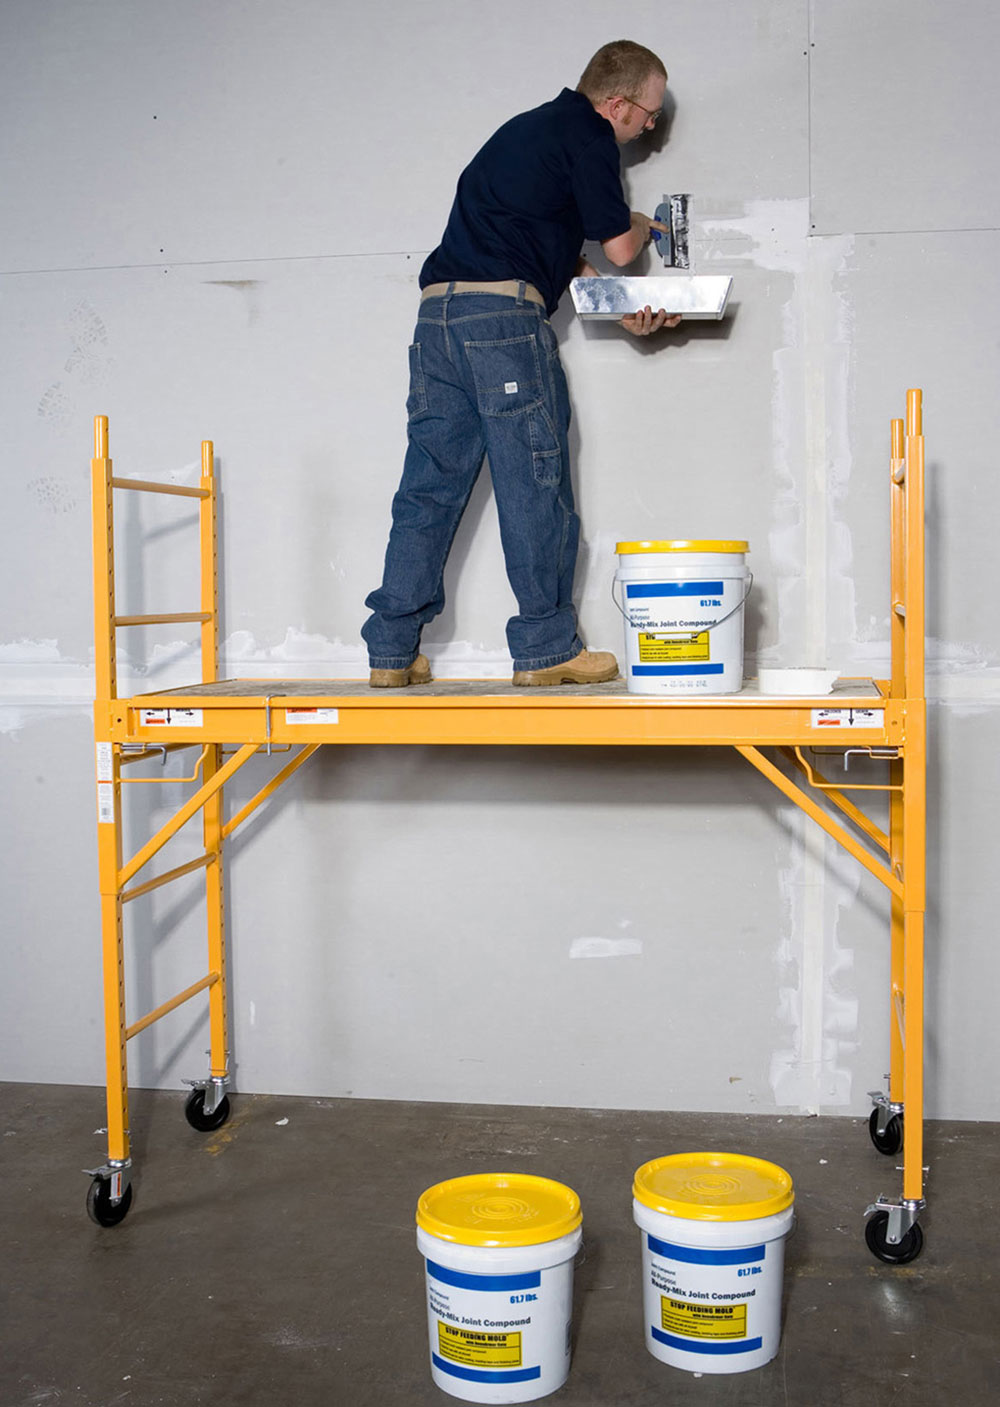 Scaffolding painting How to paint high walls and do a great job